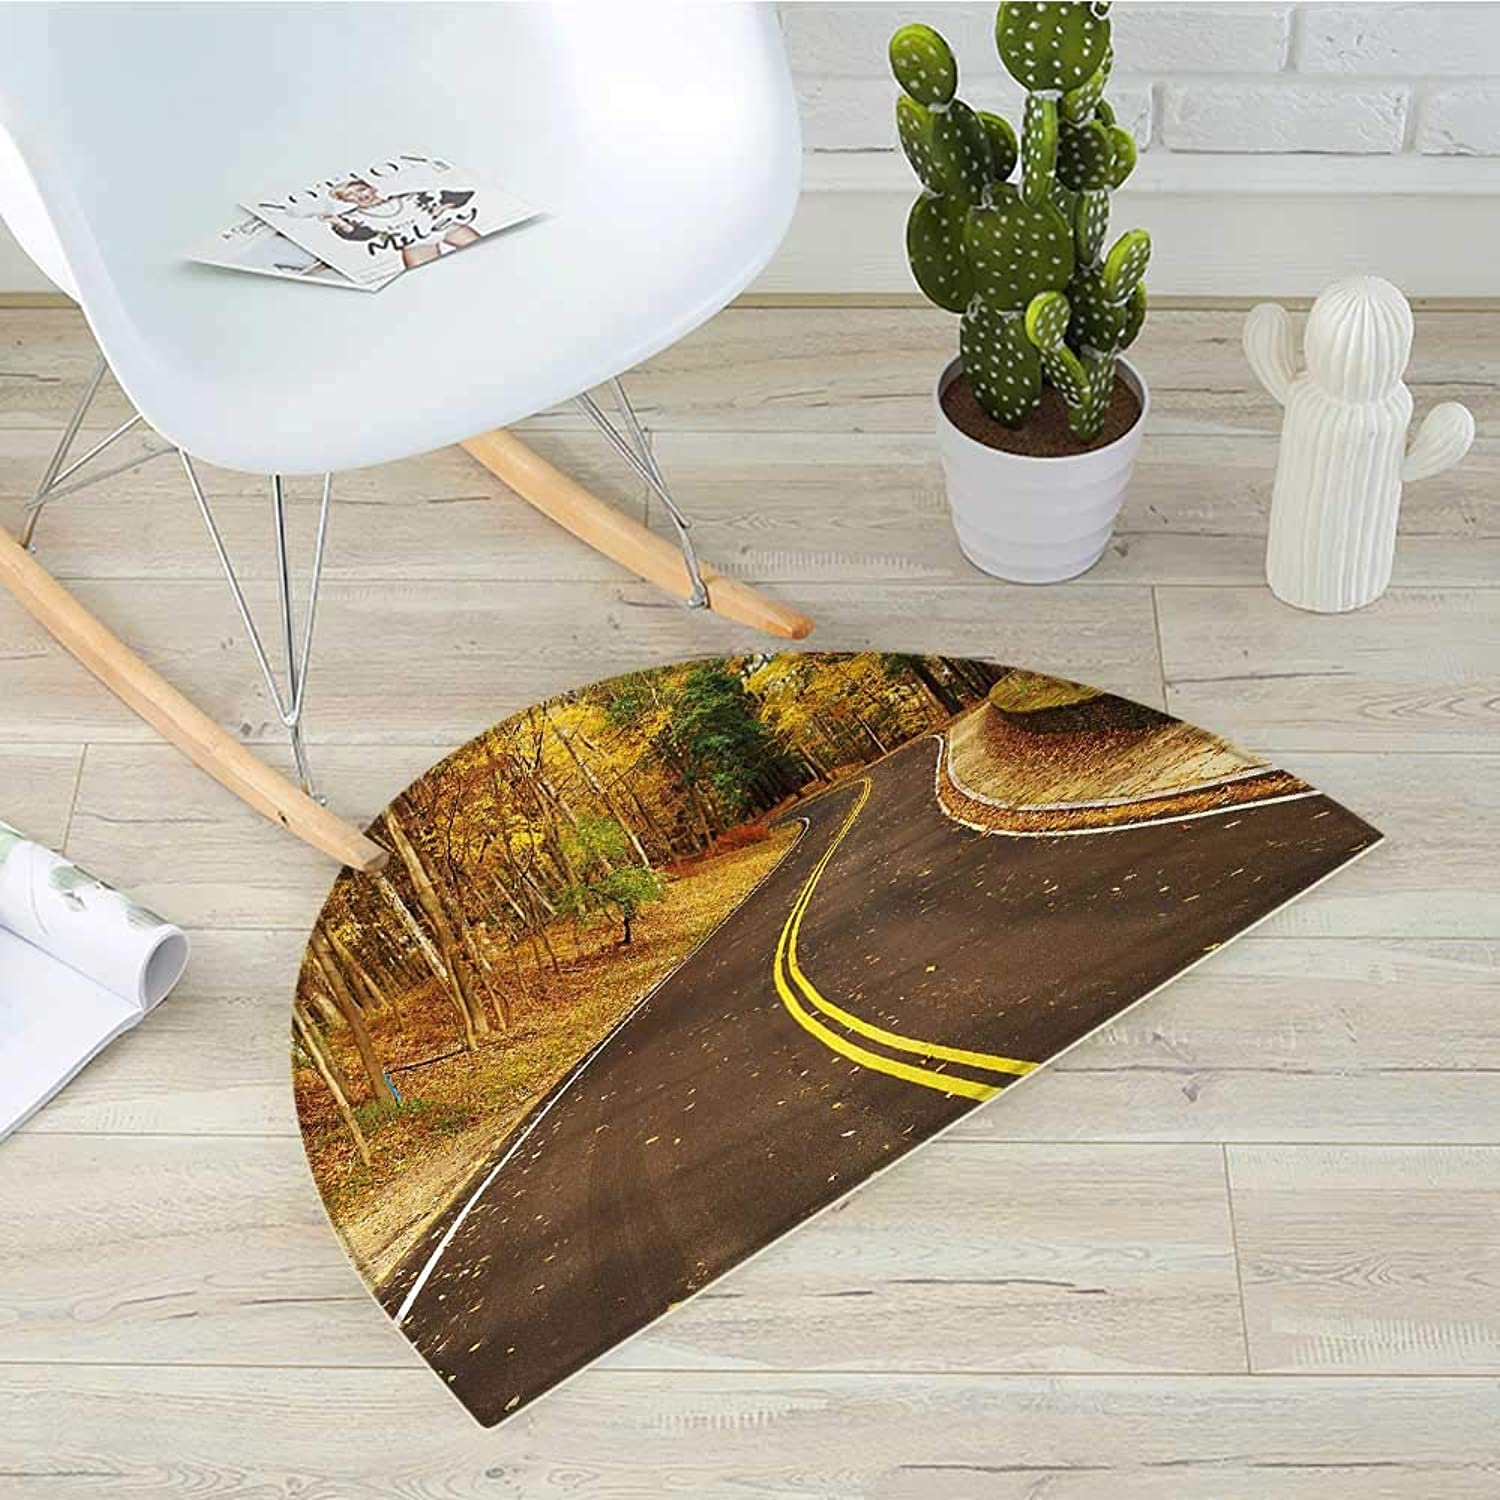 Fall Semicircle Doormat Autumn Scene with Curvy Road in The Forest at Letchworth State Park York City USA Halfmoon doormats H 43.3  xD 64.9  Multicolor